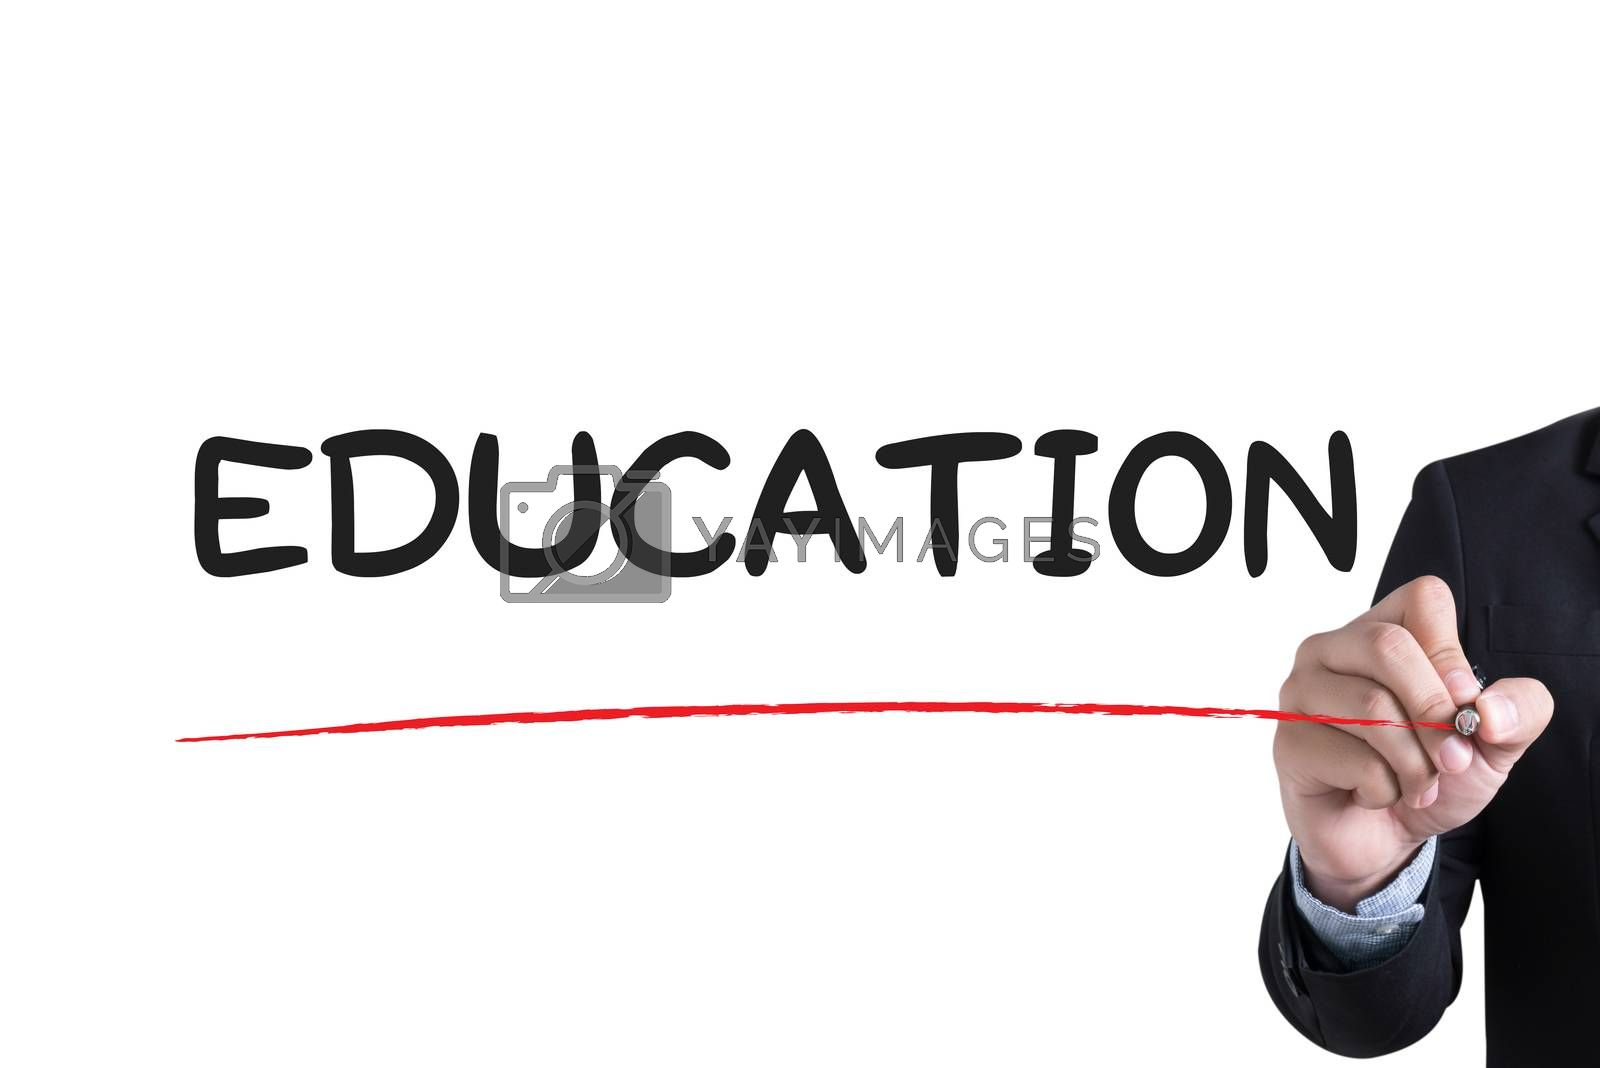 EDUCATION Businessman hand writing with black marker on white background